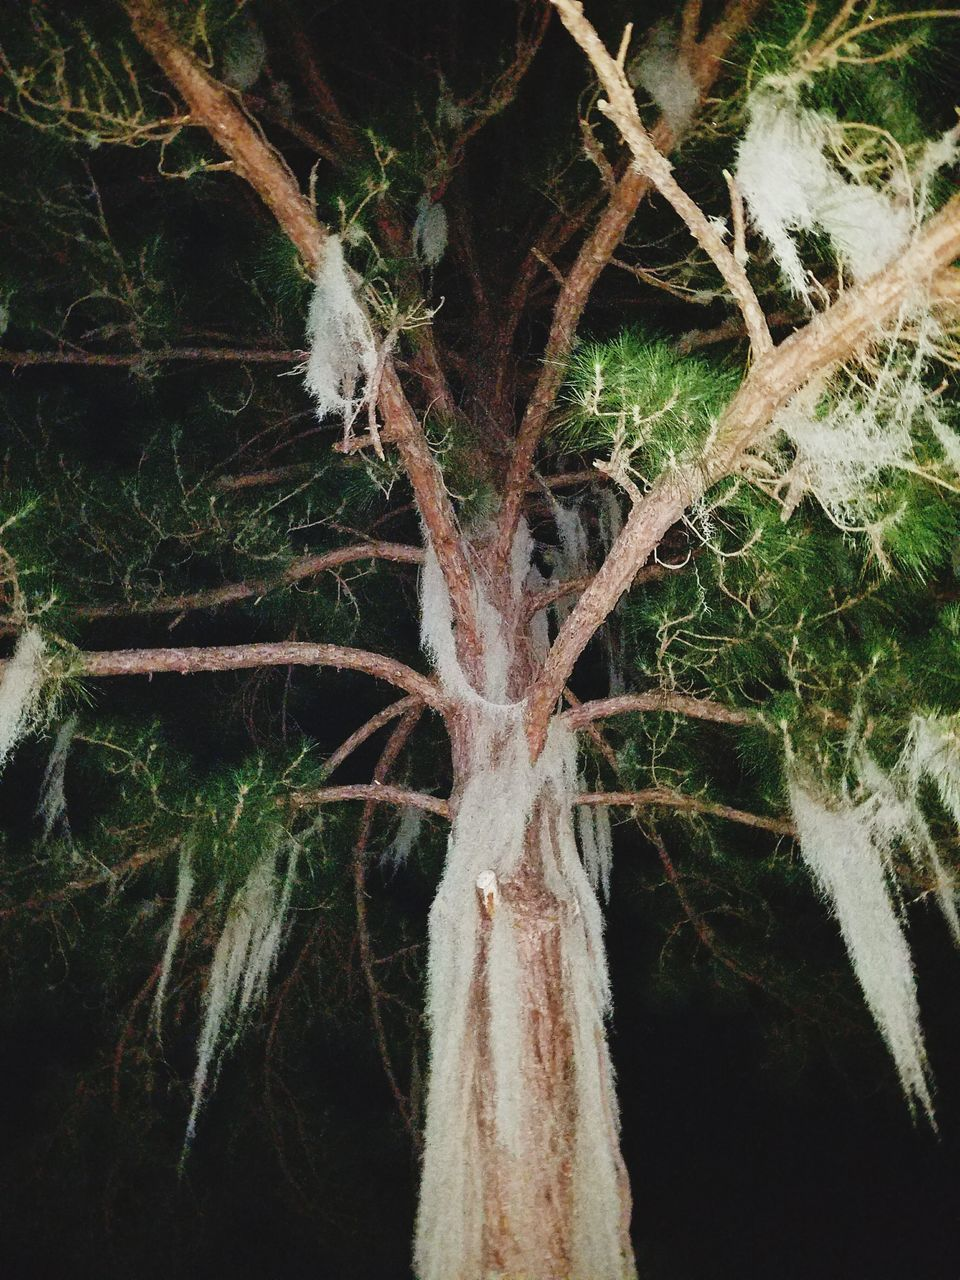 tree, plant, no people, nature, tree trunk, growth, branch, green color, night, close-up, outdoors, beauty in nature, leaf